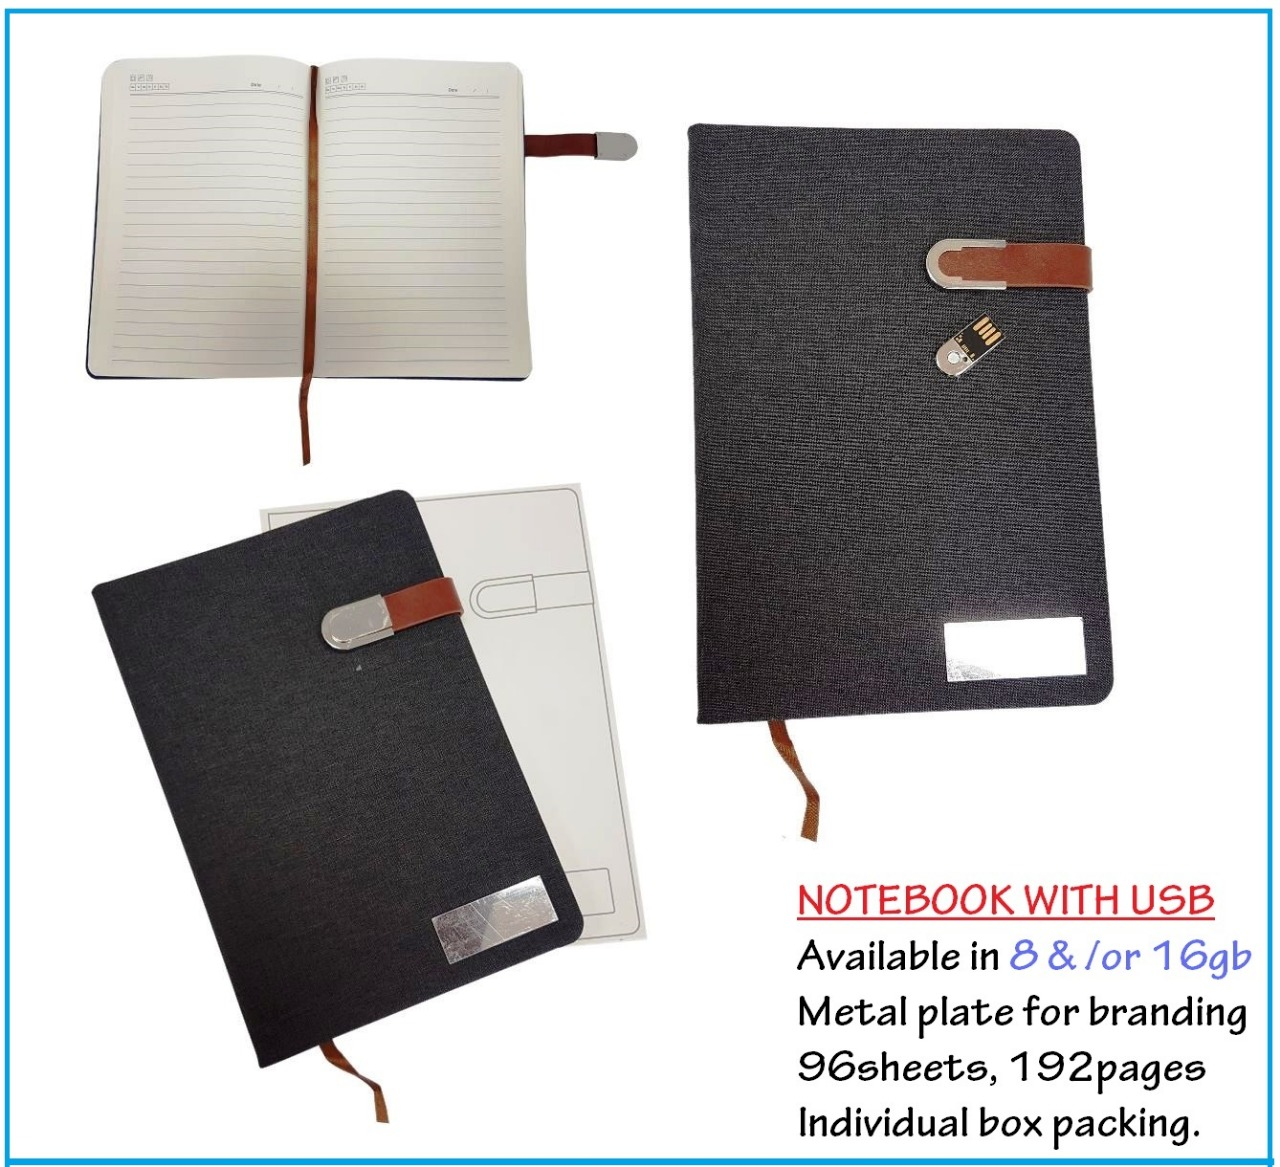 notebookwith usb